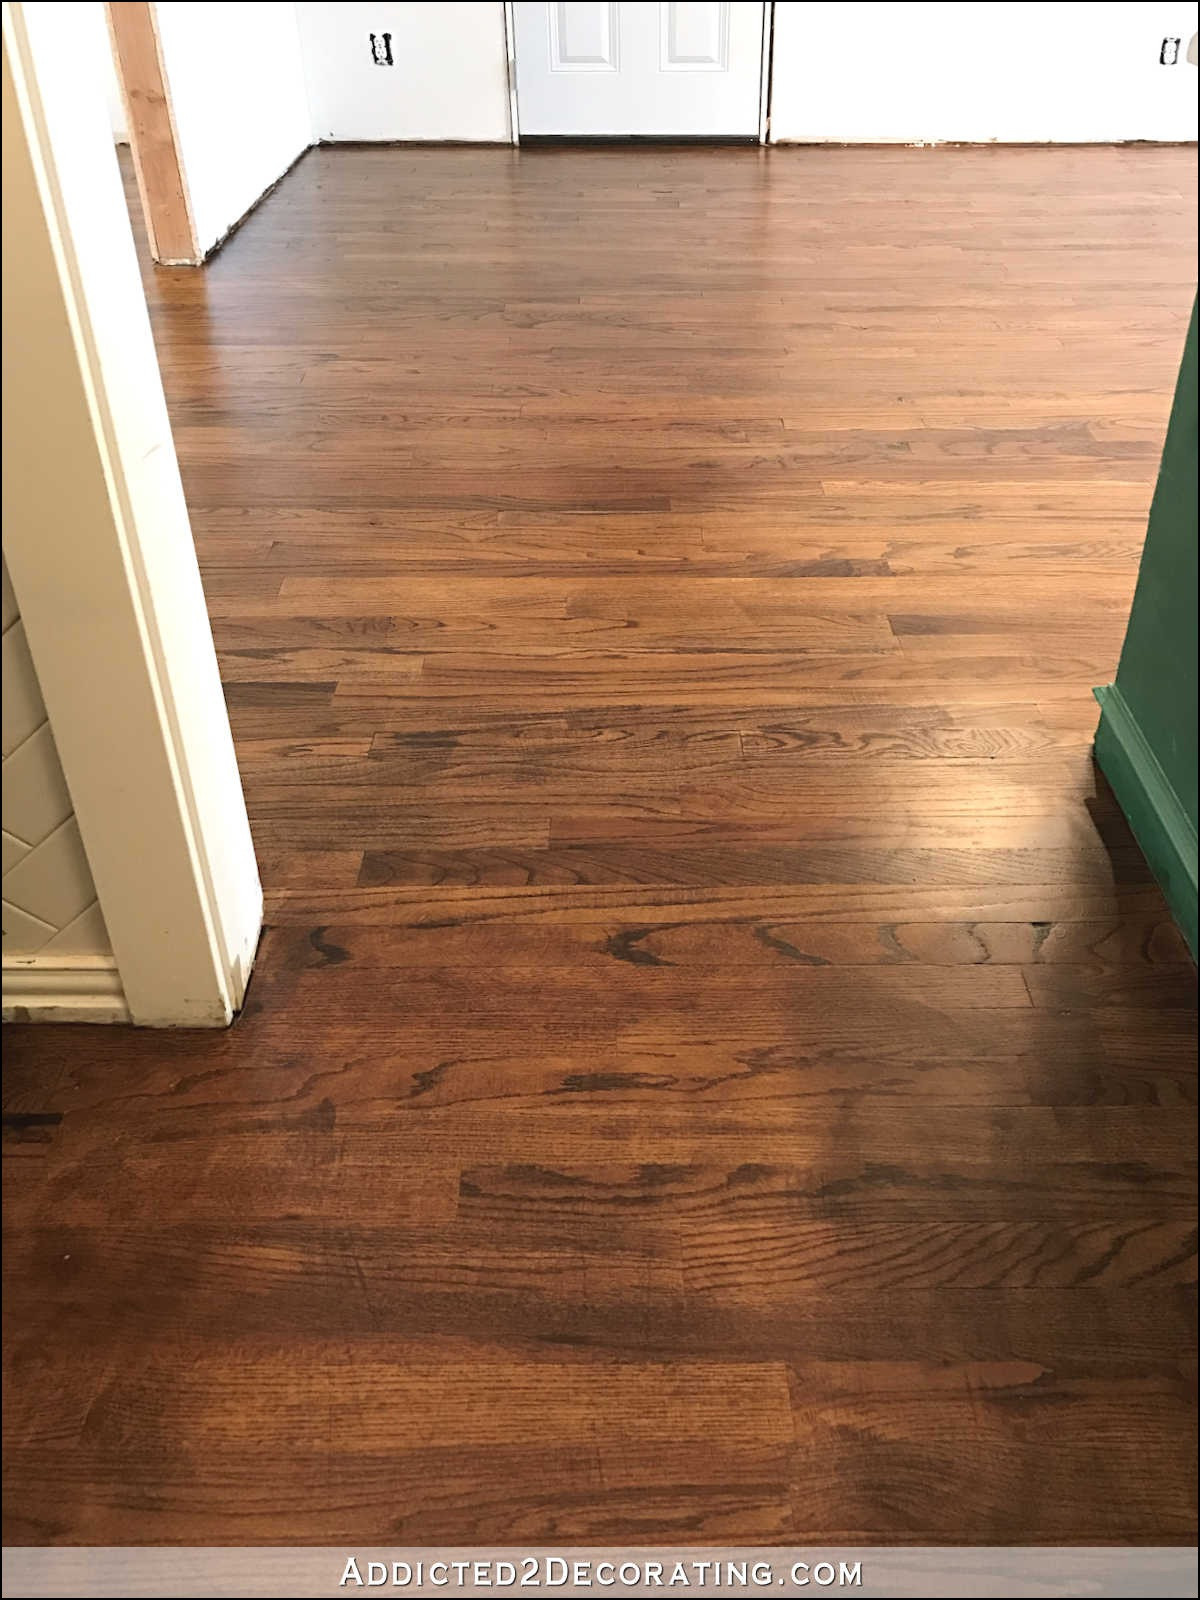 durability of laminate flooring vs hardwood of best place flooring ideas intended for best place for laminate flooring collection engineered hardwood vs hardwood cost best laminate for kitchen of